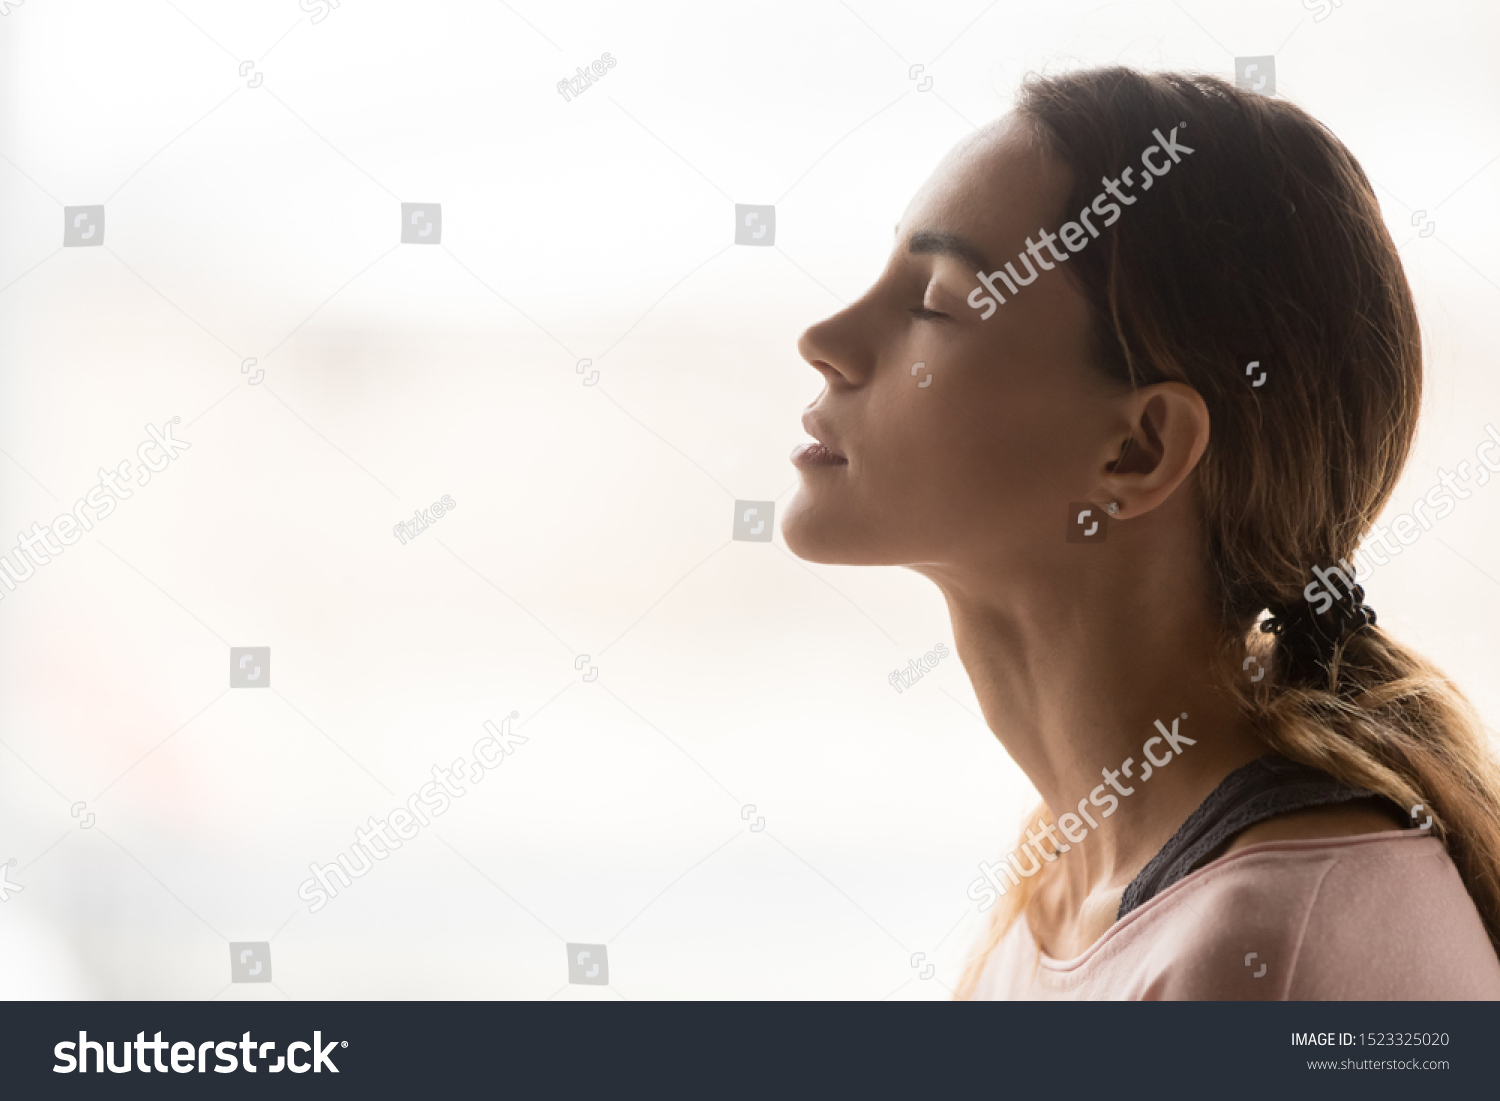 Serene young woman taking deep breath of fresh air relaxing meditating with eyes closed enjoying peace, calm girl tranquil face doing yoga pranayama exercise feel no stress free relief, side view #1523325020